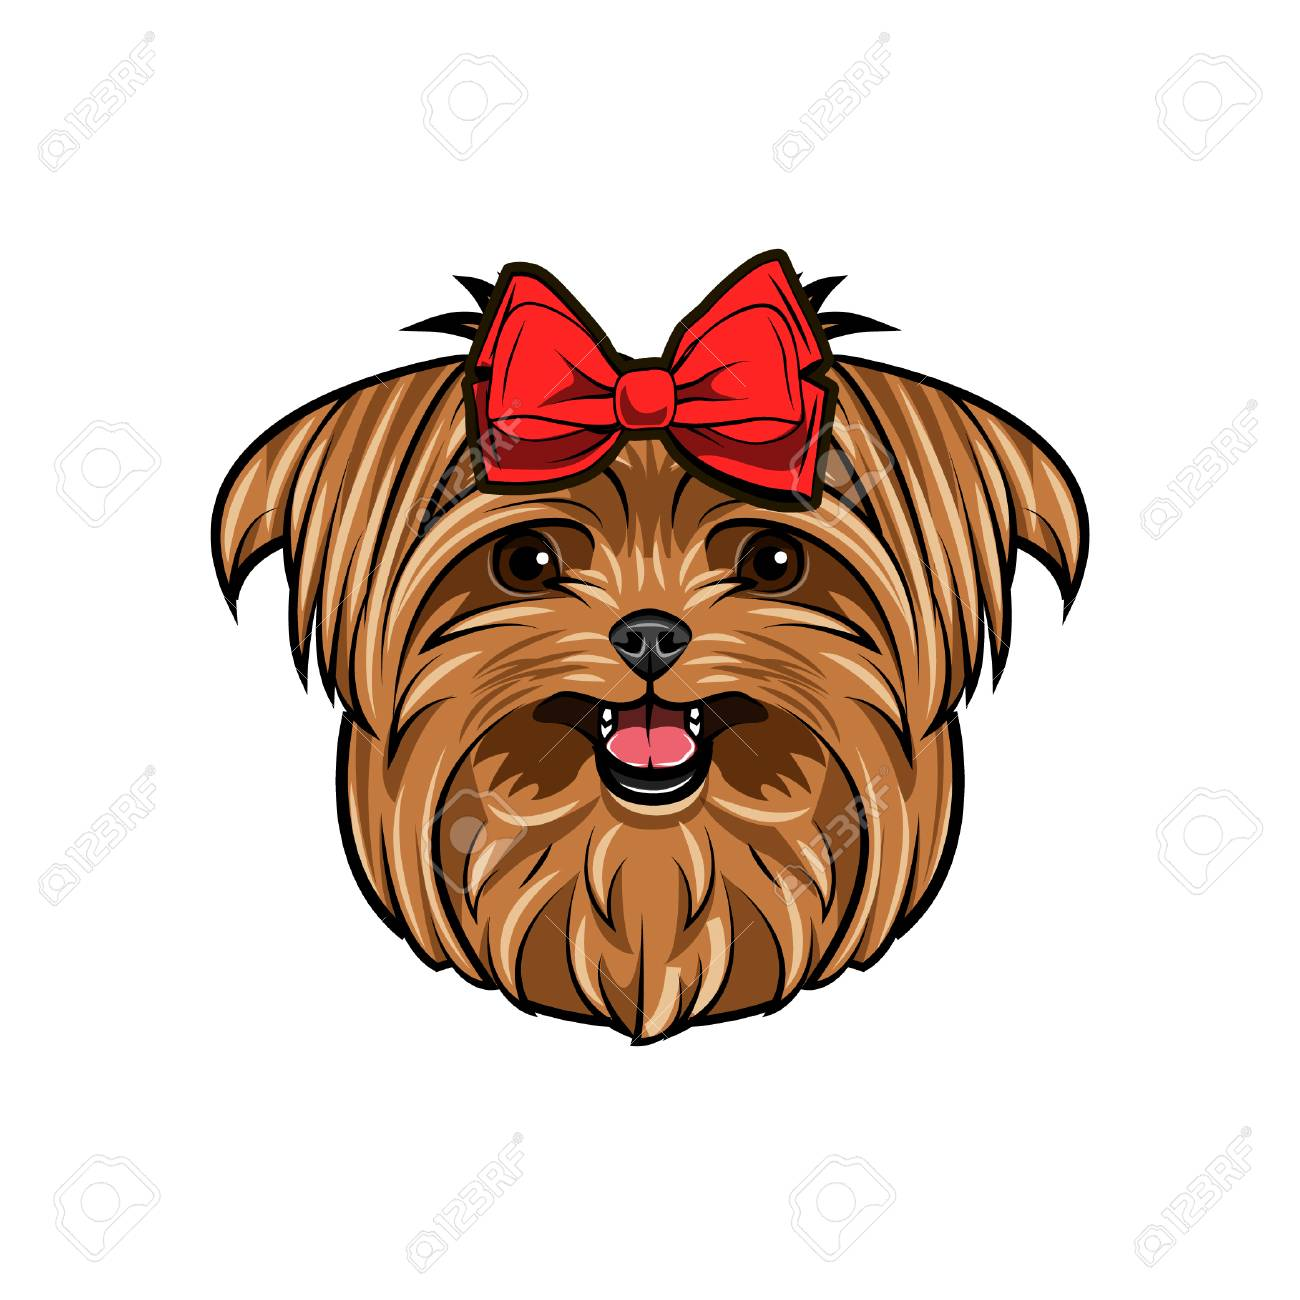 Wonderful Terrier Bow Adorable Dog - 99776292-yorkshire-terrier-dog-head-yorkshire-terrier-decorated-with-red-bow-on-her-head-cute-dog-portrait-ve  Graphic_496248  .jpg